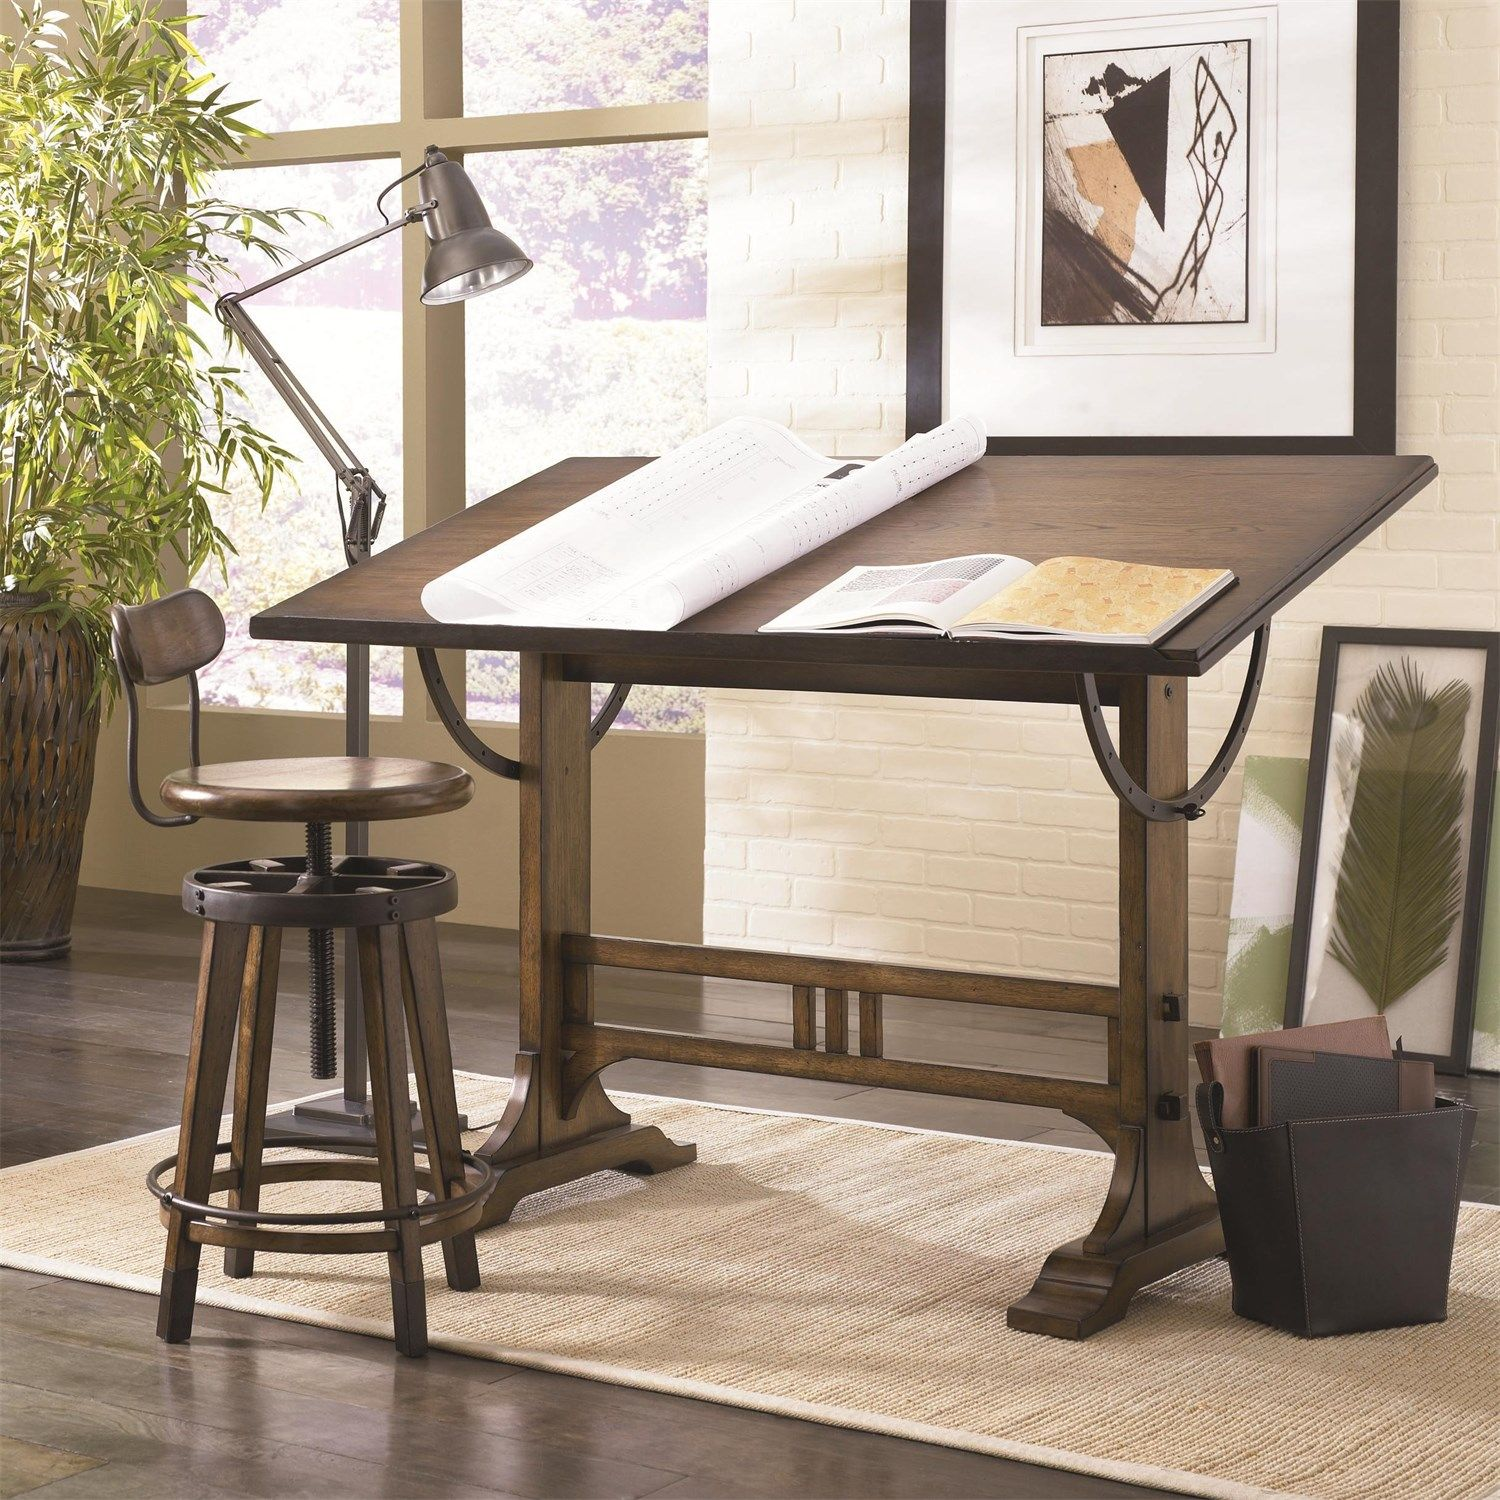 25 Awesome Rustic Home Office Designs: Hammary 166-940 Studio Home Architect Desk In Oak